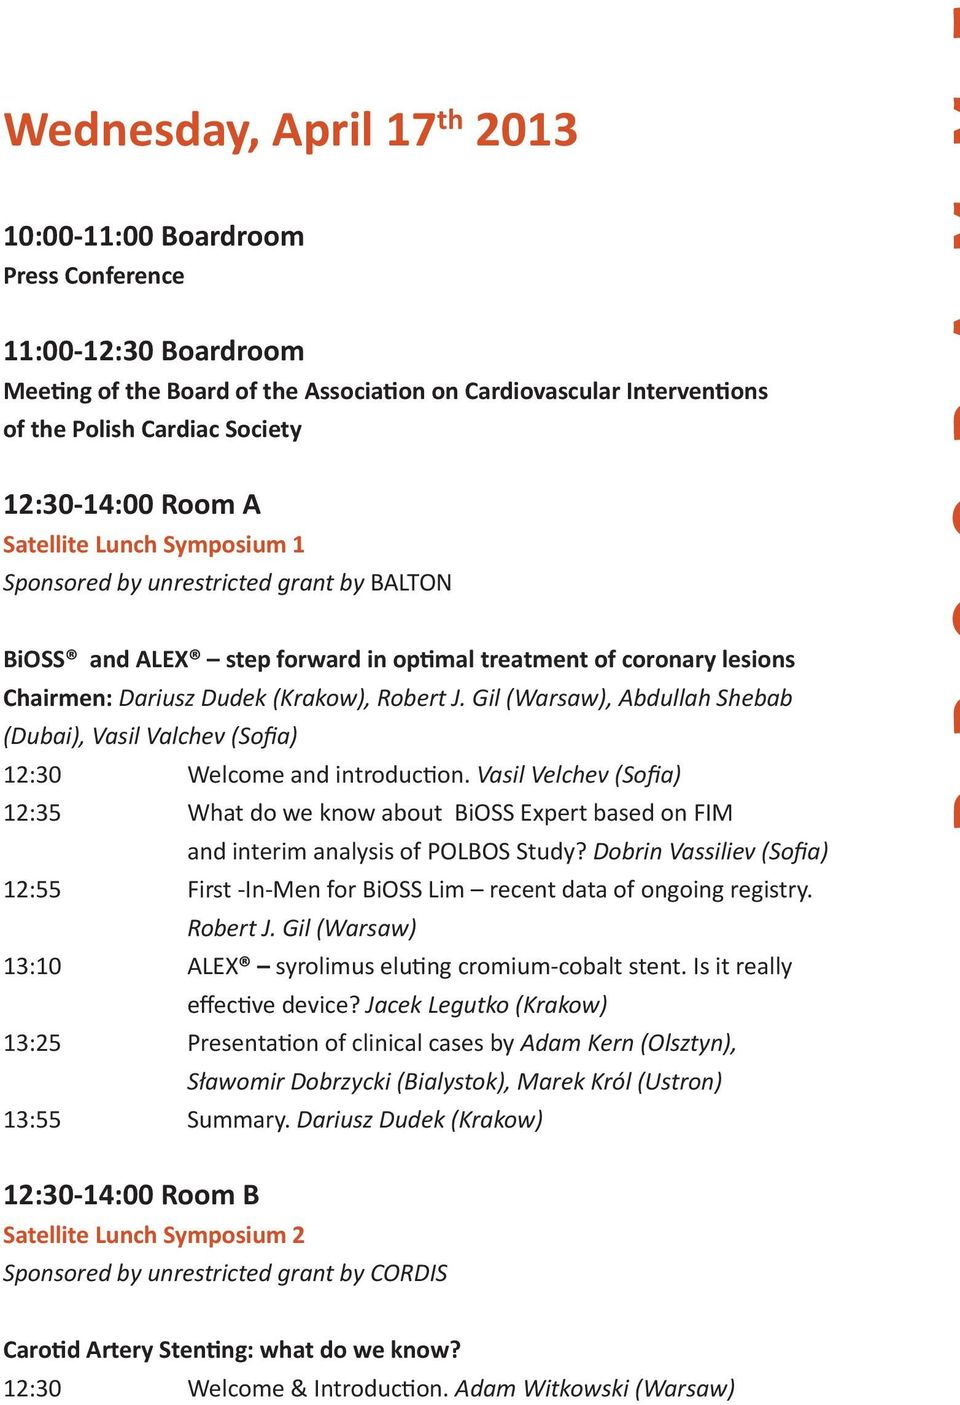 J. Gil, Abdullah Shebab (Dubai), Vasil Valchev (Sofia) 12:30 Welcome and introduction. Vasil Velchev (Sofia) 12:35 What do we know about BiOSS Expert based on FIM and interim analysis of POLBOS Study?